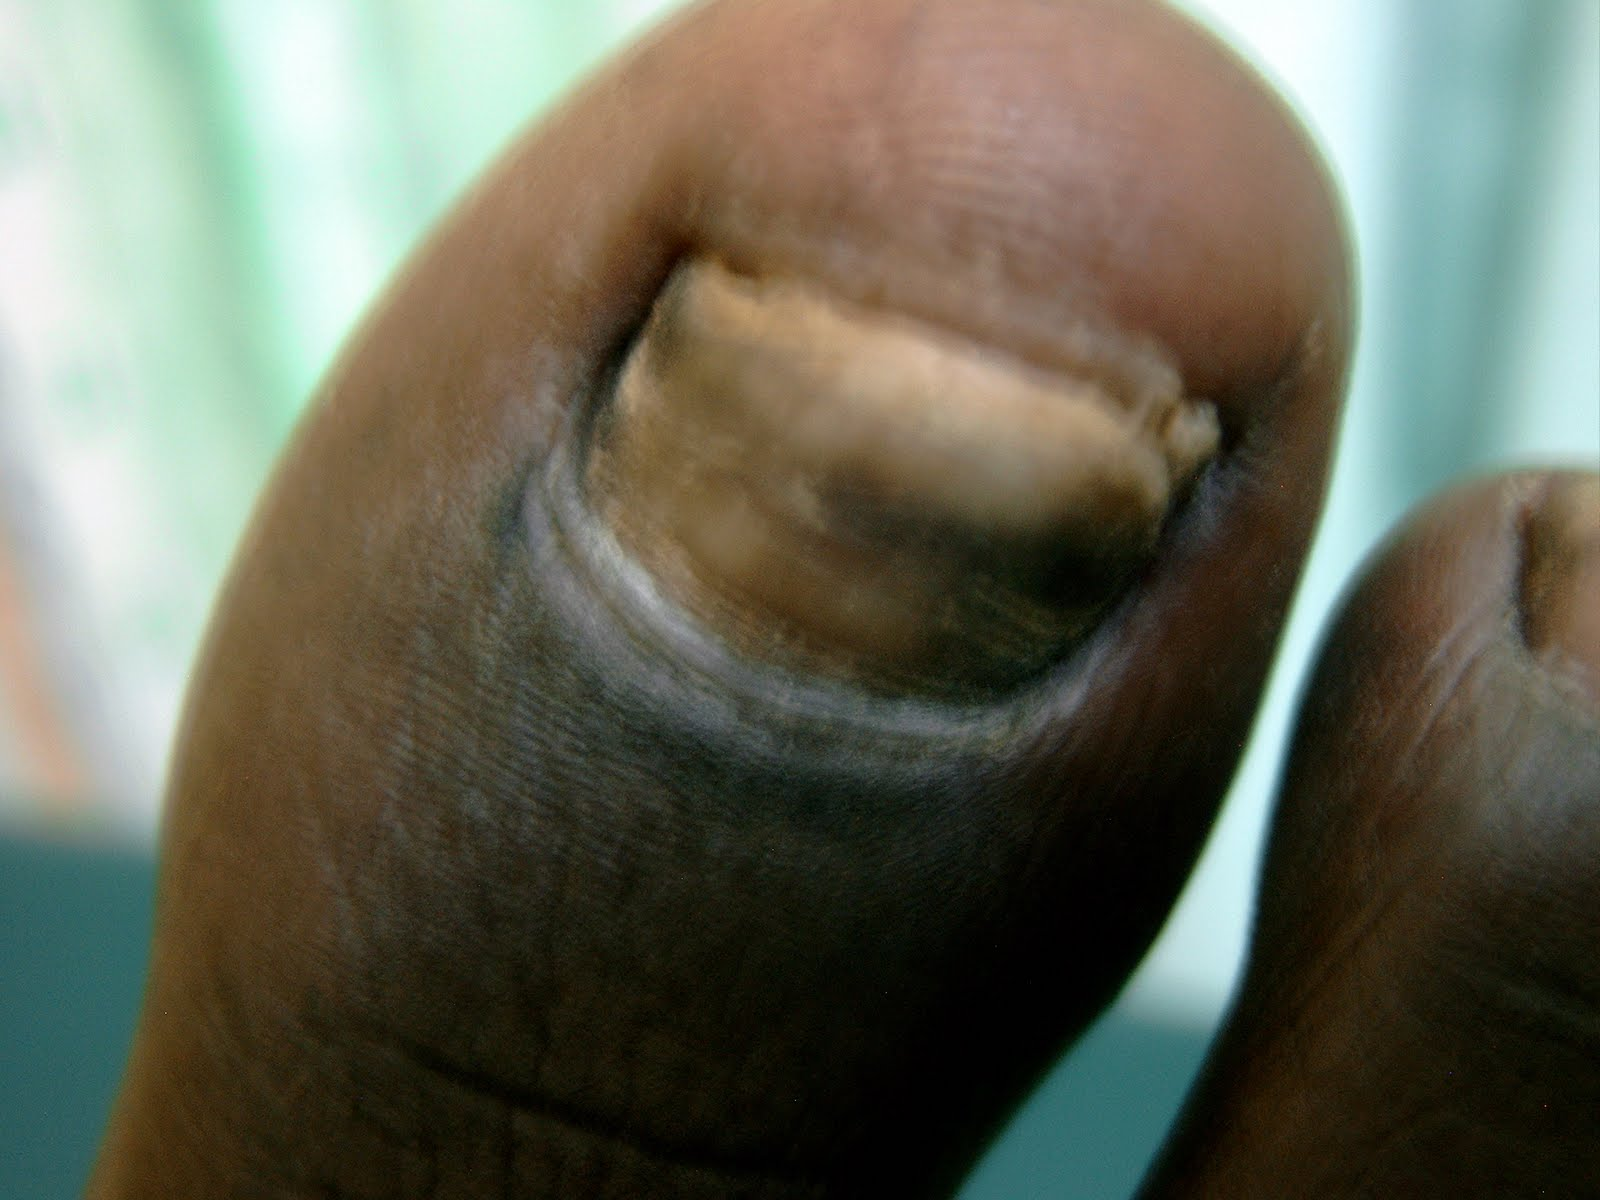 how to clean a nail fungus infection